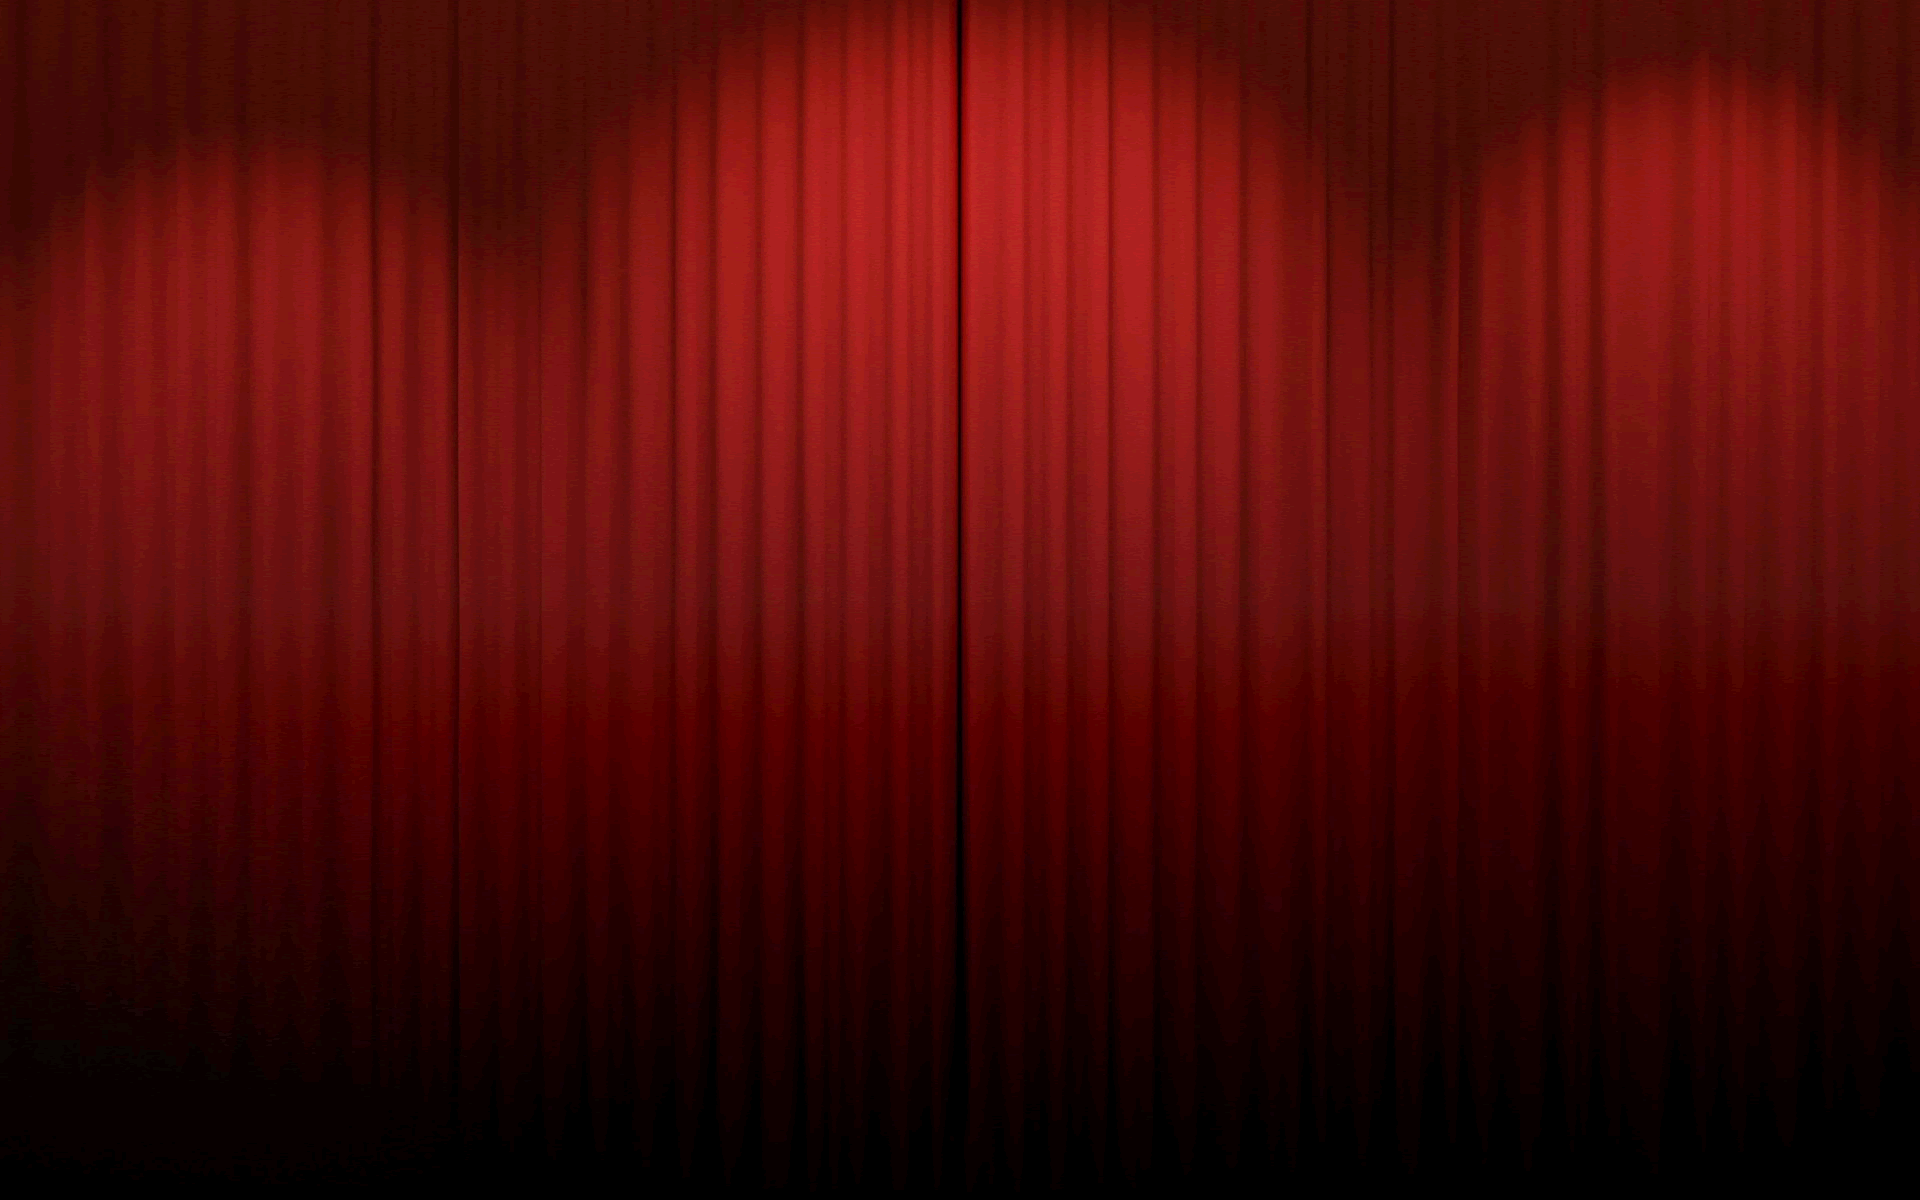 Theatre curtains png - Theater Curtains For School Theatre Curtains Png Red Curtains 1920 X 1200